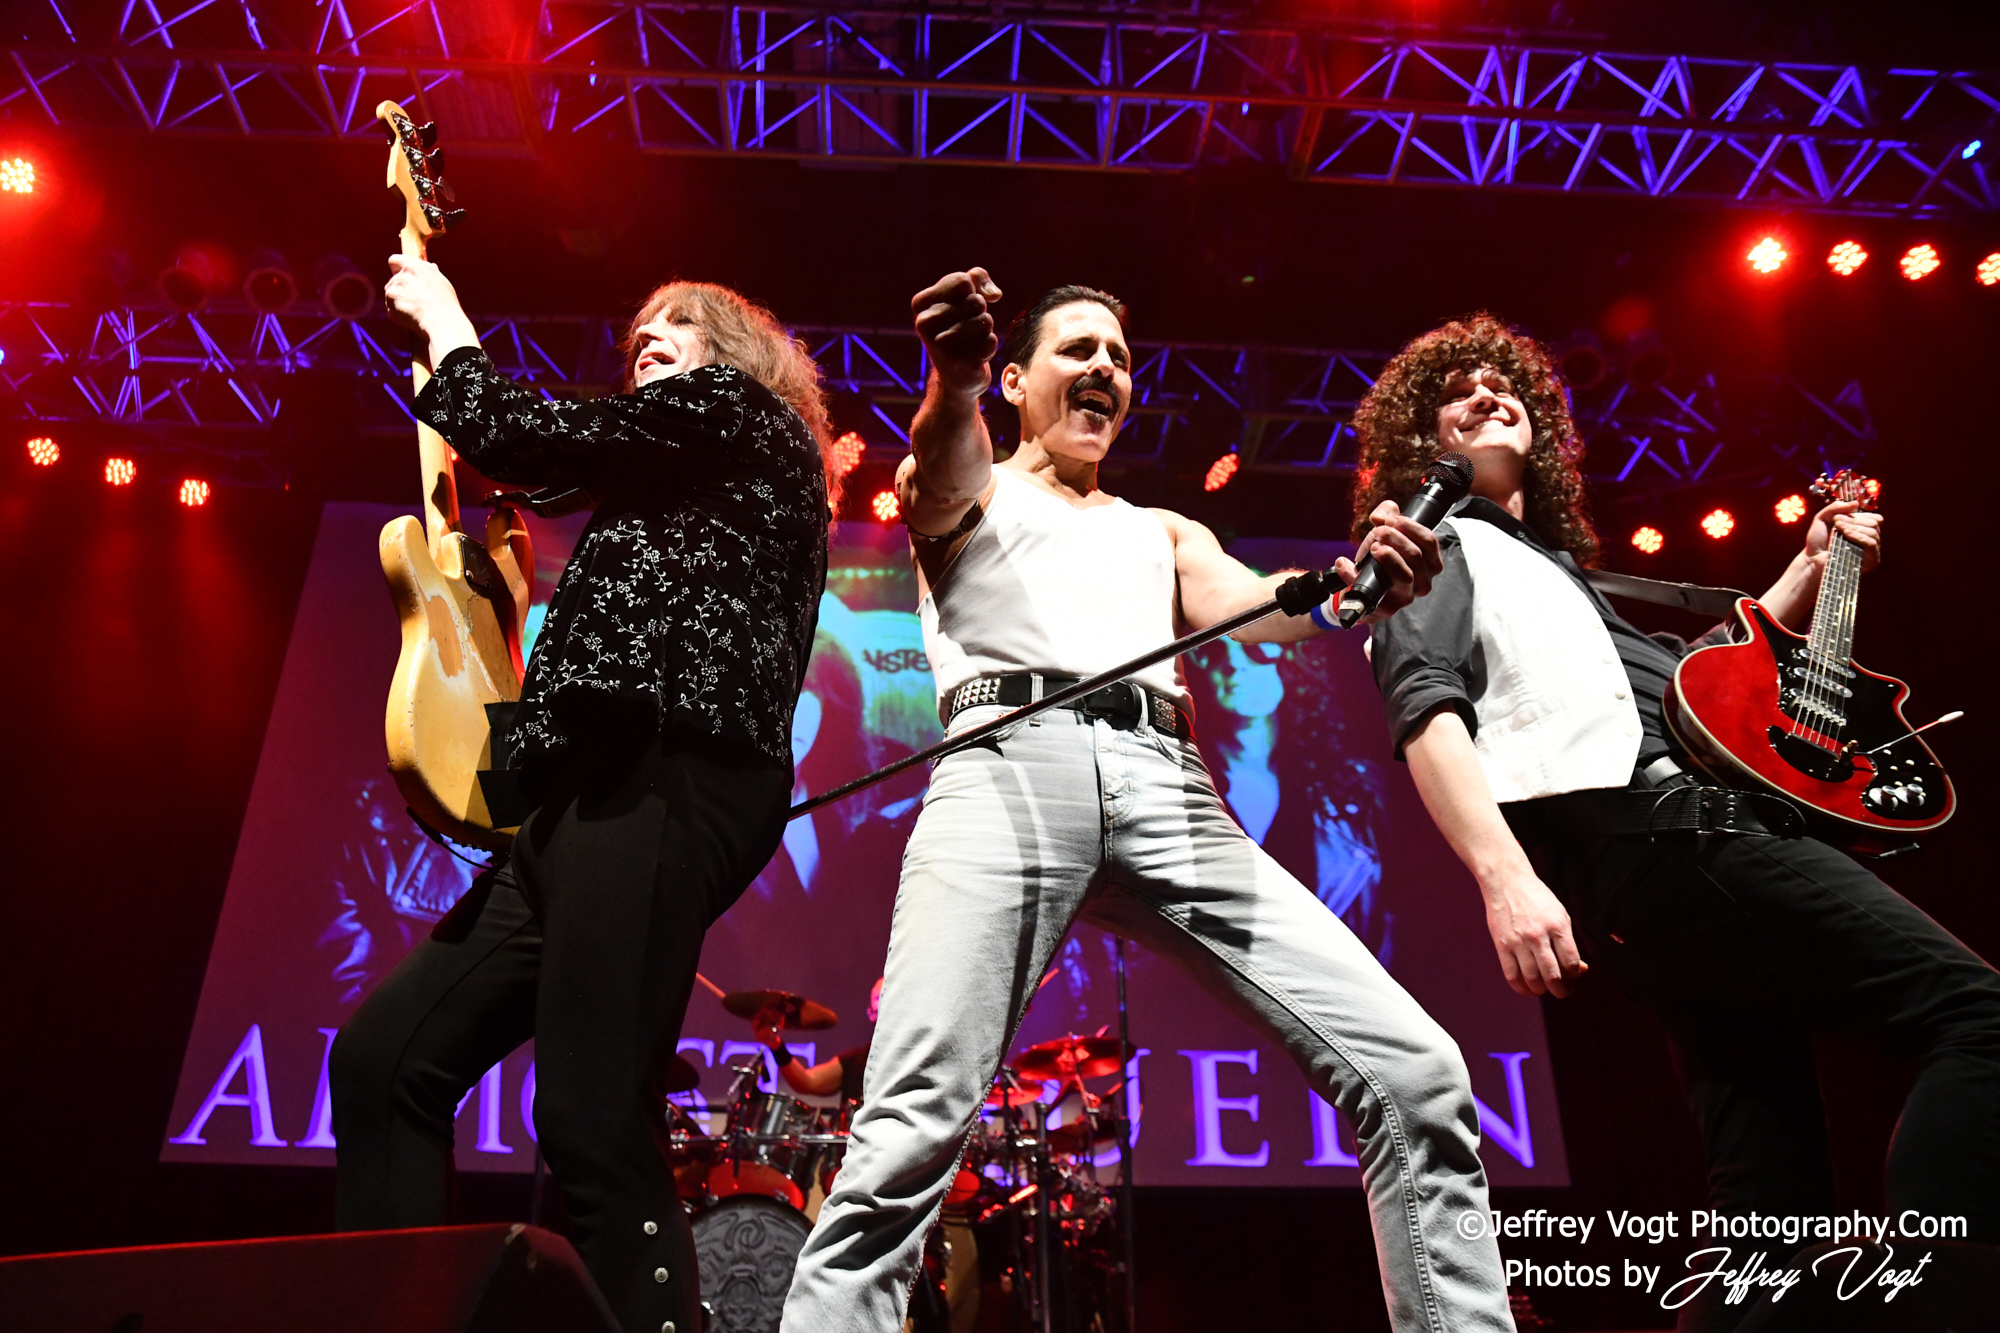 Concerts; Bands; Almost Queen; Big 100.3; Cameras; Nikon Camera; Nikon D850; Nikon DSLR; Tamron 24-75 F2.8; Tamron 70-200 F2.8; 2019; 12/28/2019; The Ultimate Queen Experience; Steve Leonard; Randy Gregg; Queen; Joseph Russo; John Cappadona; Lisa Berigan; Big 100.3 Throwback Bash; Genres; Classic Rock; Hard Rock; Rock; Rock and Roll; Jeffrey Vogt; Photos by Jeffrey Vogt; Photography by Jeffrey Vogt; Jeffrey Vogt Photos; Jeffrey Vogt Photography; www.jeffreyvogtphotography.com; Locations; Maryland; Silver Spring Maryland; Silver Spring; Music; Live Music; Musicians; Bass Guitarist; Drummer; Sherreder; Lead Guitarist; Photos; Band; Band Photo; Band Photographer; Band Photography; Band Photos; Concert; Concert Photo; Concert Photographer; Concert Photography; Concert Photos; DMV Music; DMV Music Photographer; DMV Music Photography; Live Music Photographer; Gig Photos; Gig Photography; Gig Photographer; Gig; DMV Music Photos; On Stage Photographer; On Stage; Live Music Photos; Live Music Photography; Pit Photos; Pit Photography; Pit Photographer; On Stage Photos; On Stage Photography; Tour; Tribute; Tributes; Tribute Band; Cover Songs; Cover Bands; Venues; The Fillmore Silver Spring; The Fillmore;